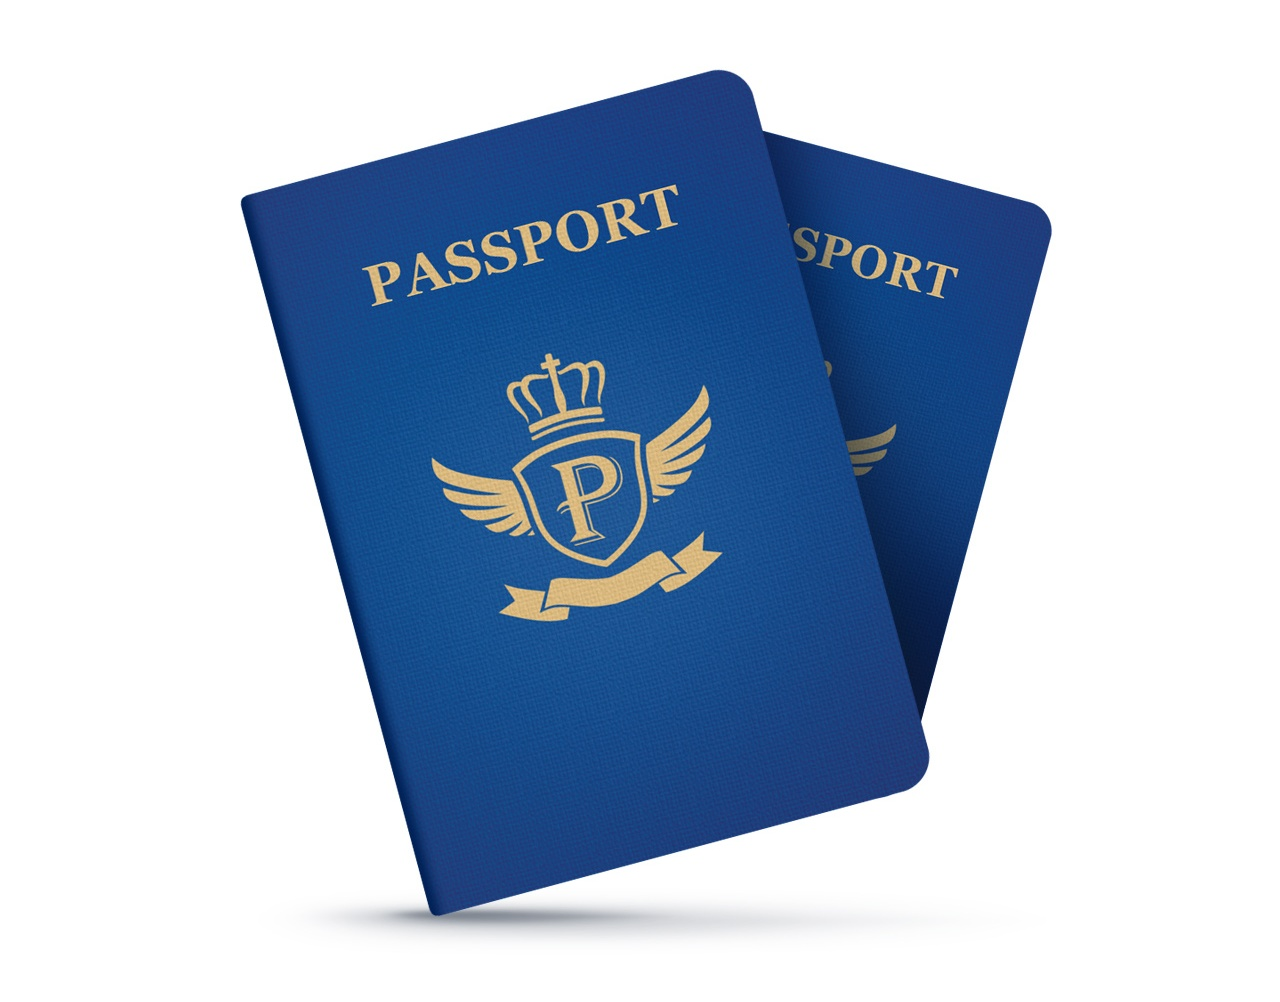 Passport images clipart clipart freeuse Passport Clipart | Clipart Panda - Free Clipart Images clipart freeuse